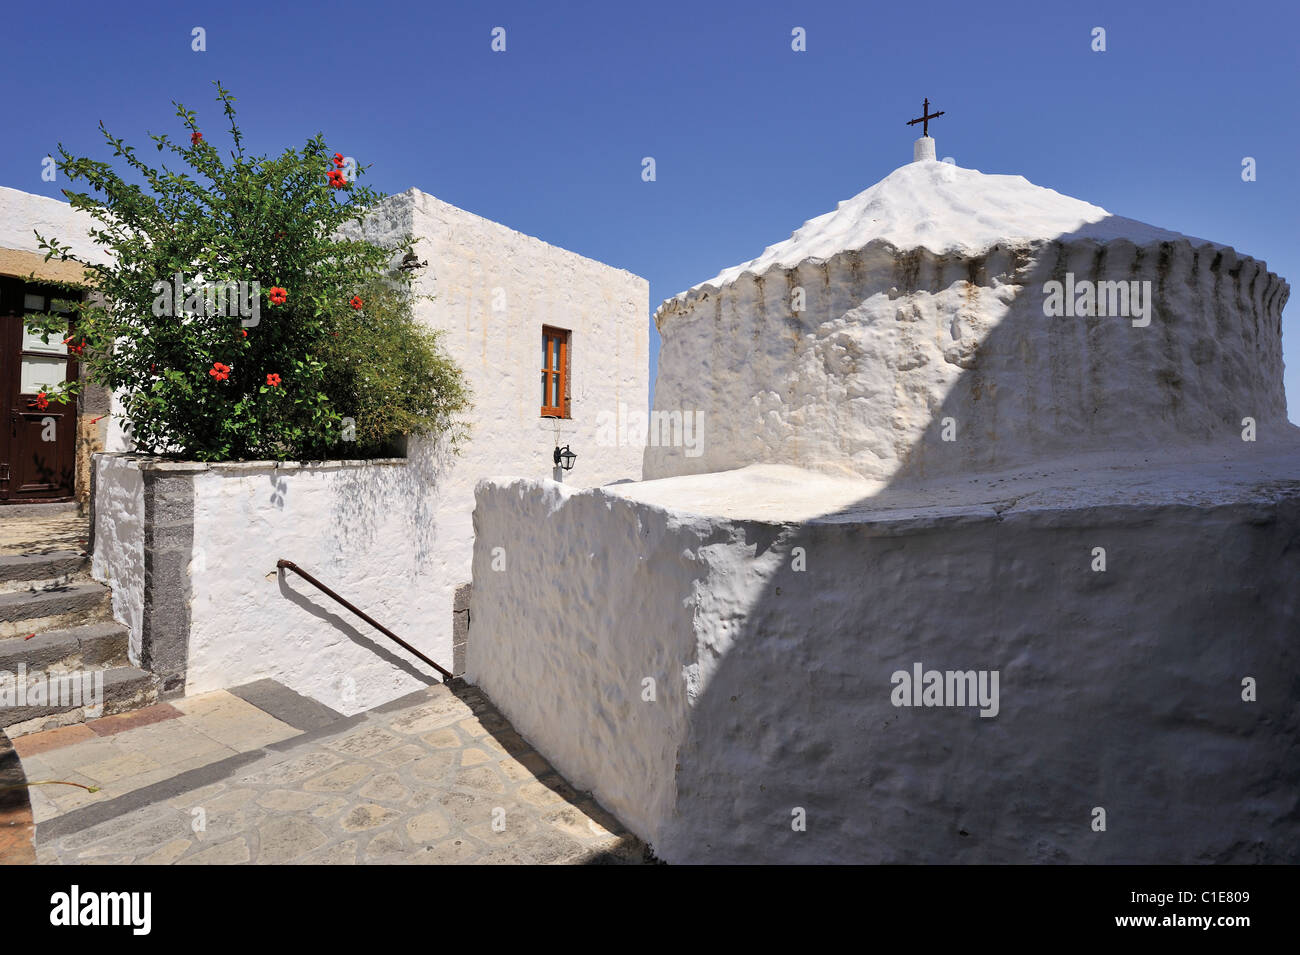 The interior of the Apocalypse' Monastery in Patmos - Stock Image